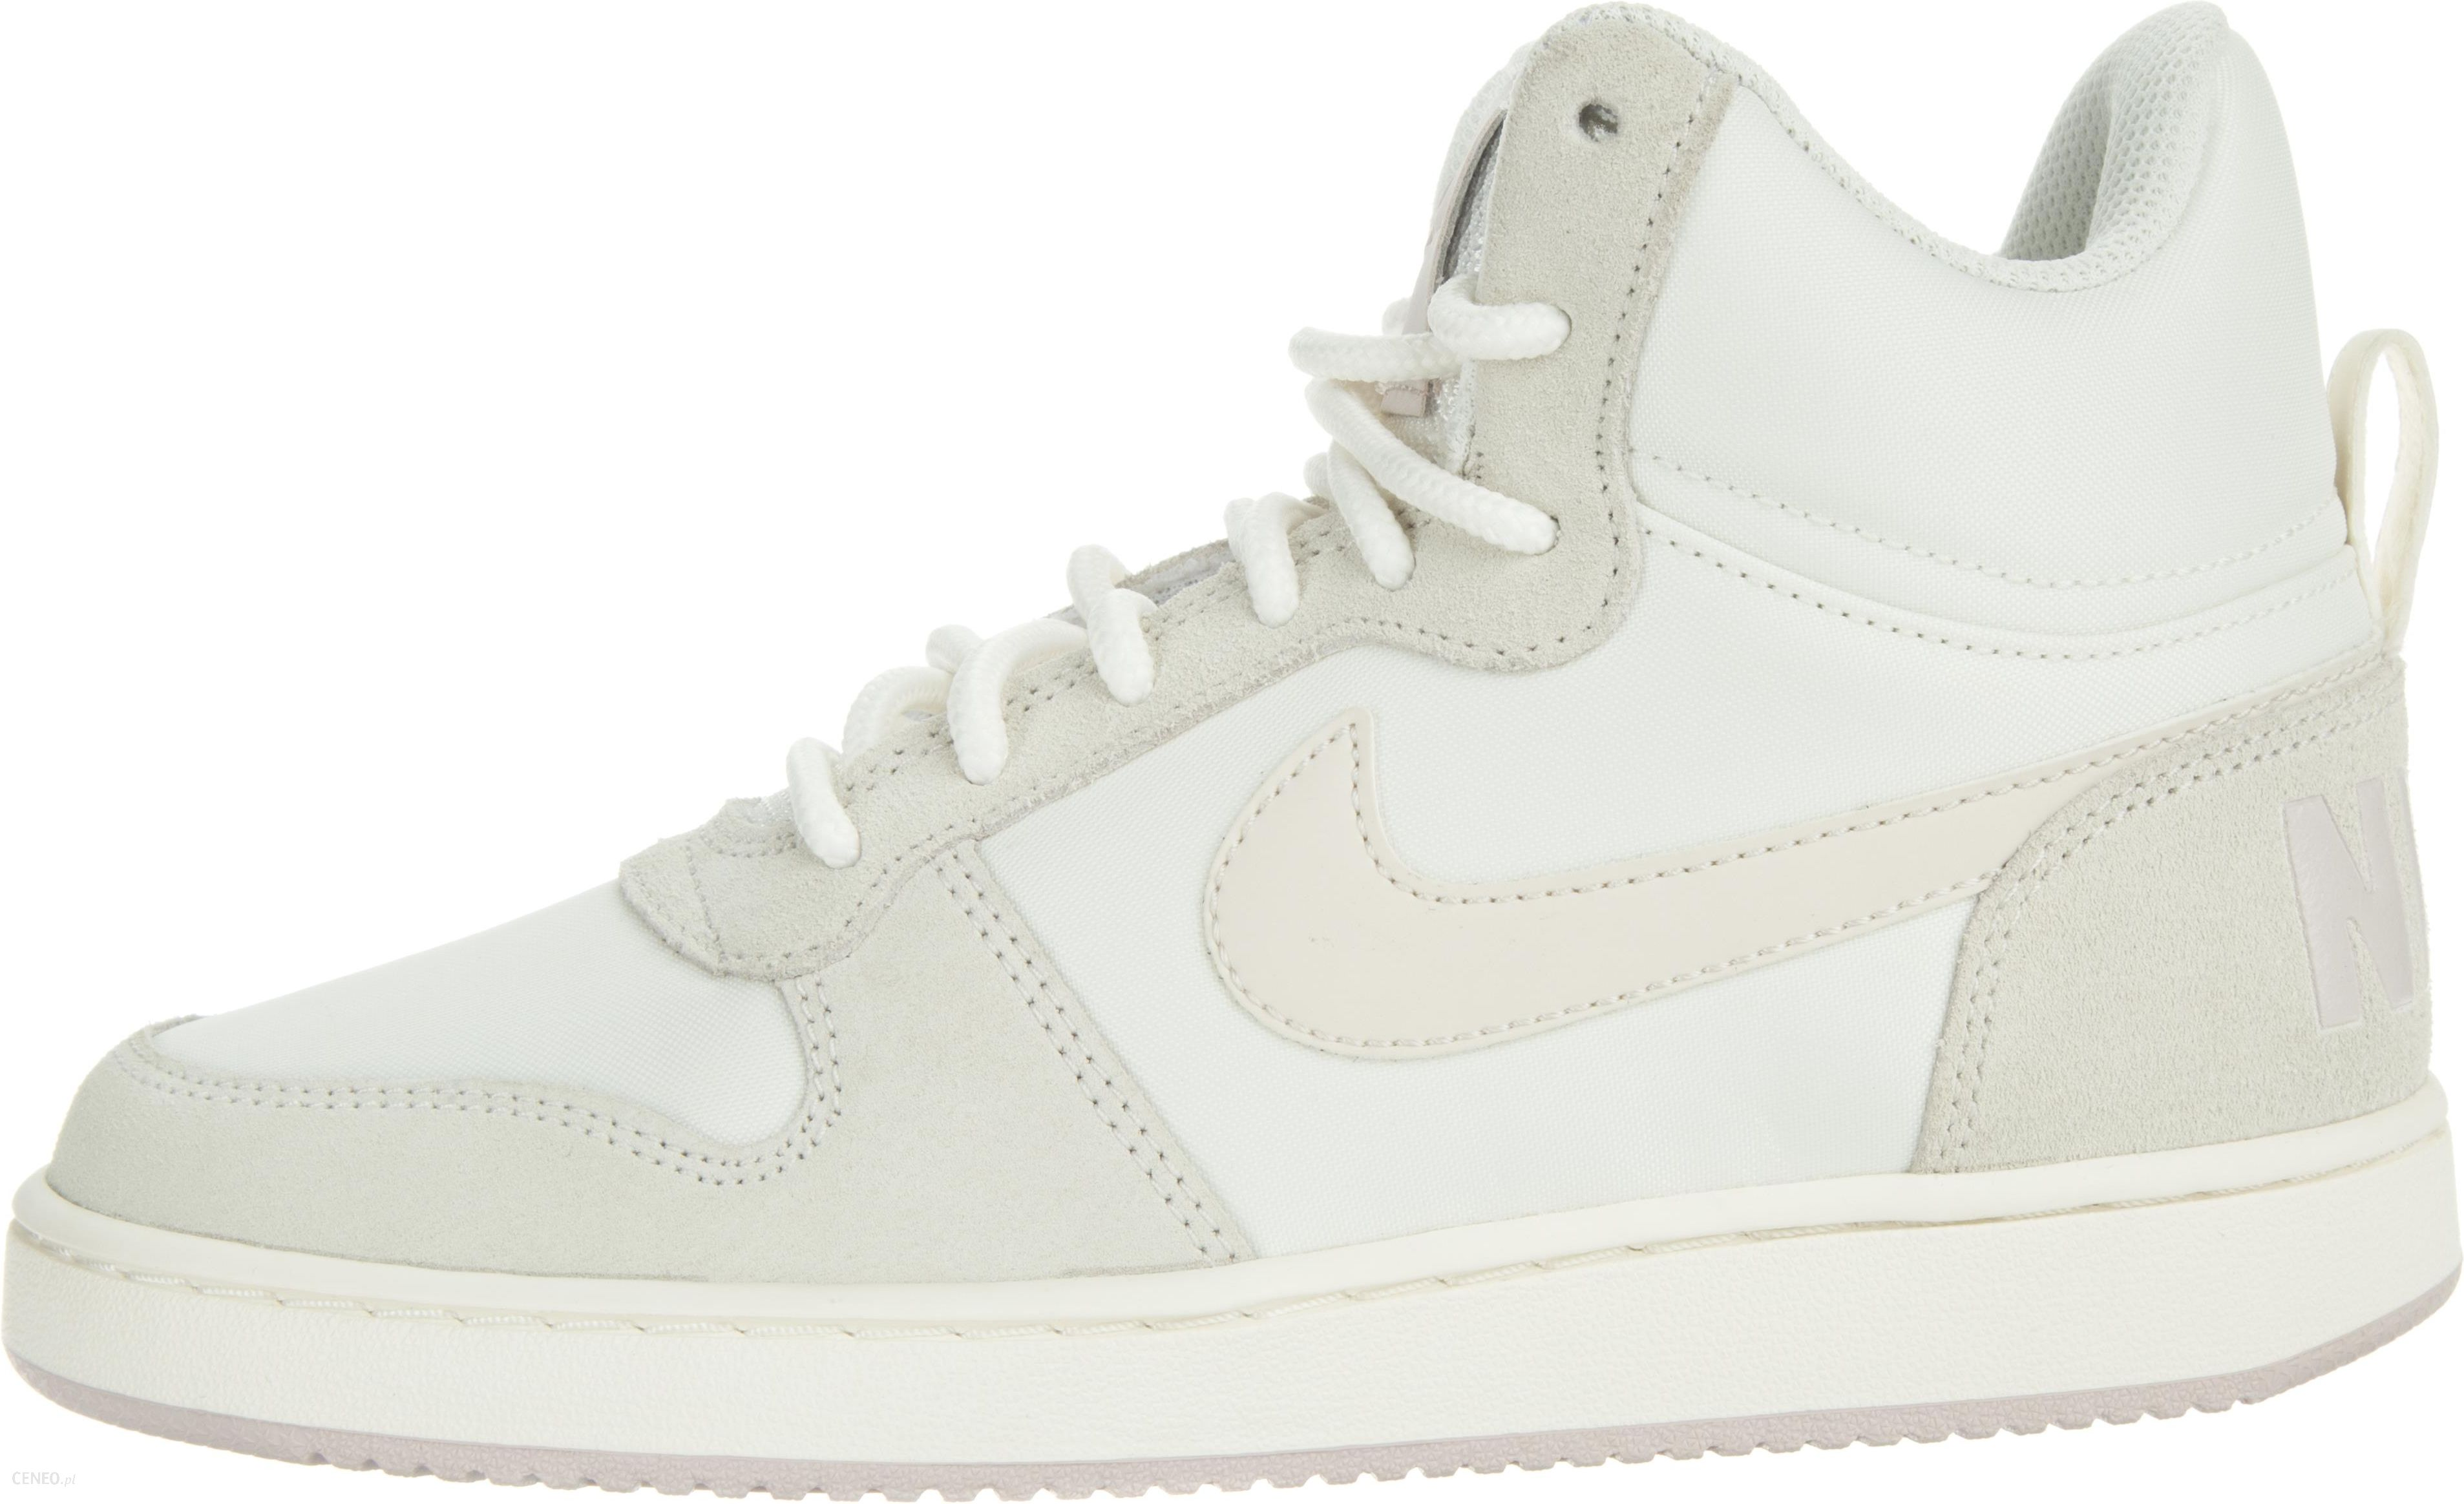 54f1b2c6 Nike Court Borough Mid Premium Sneakers Beżowy 39 - Ceny i opinie ...